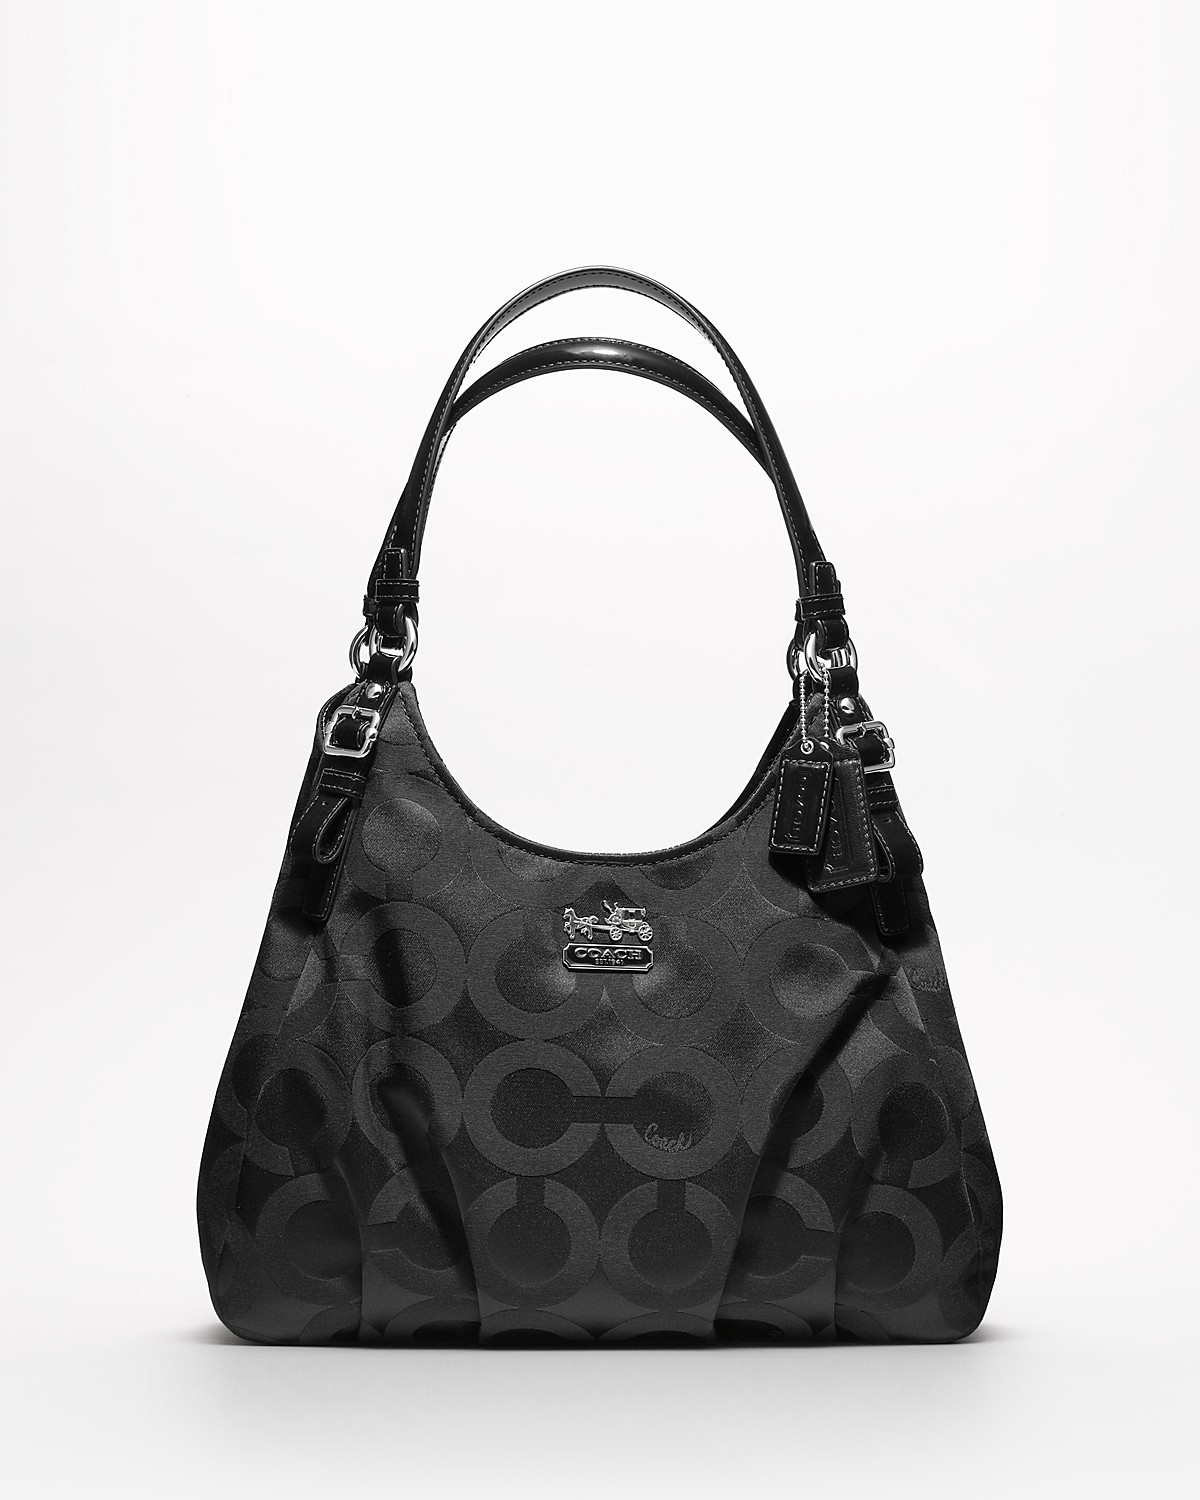 Who wants to win a Coach handbag? #giveaway